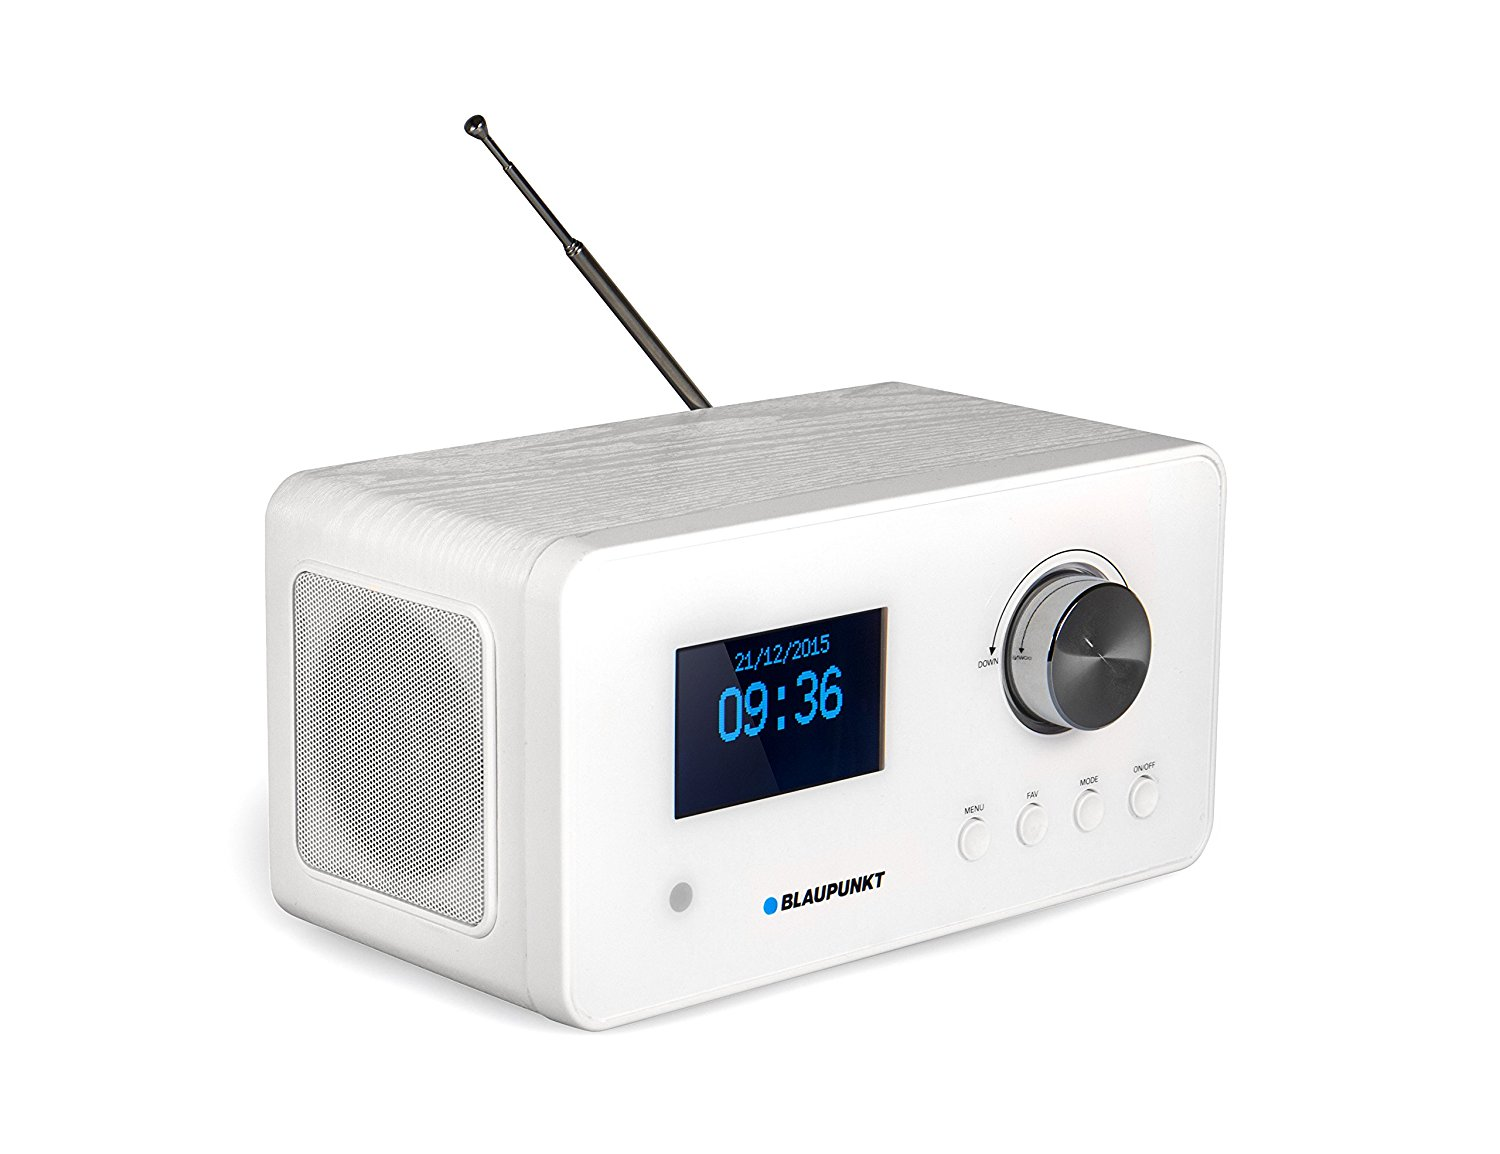 Digitalradio Für Küche Blaupunkt Ird 30 Internetradio Dab Digitalradio Wecker